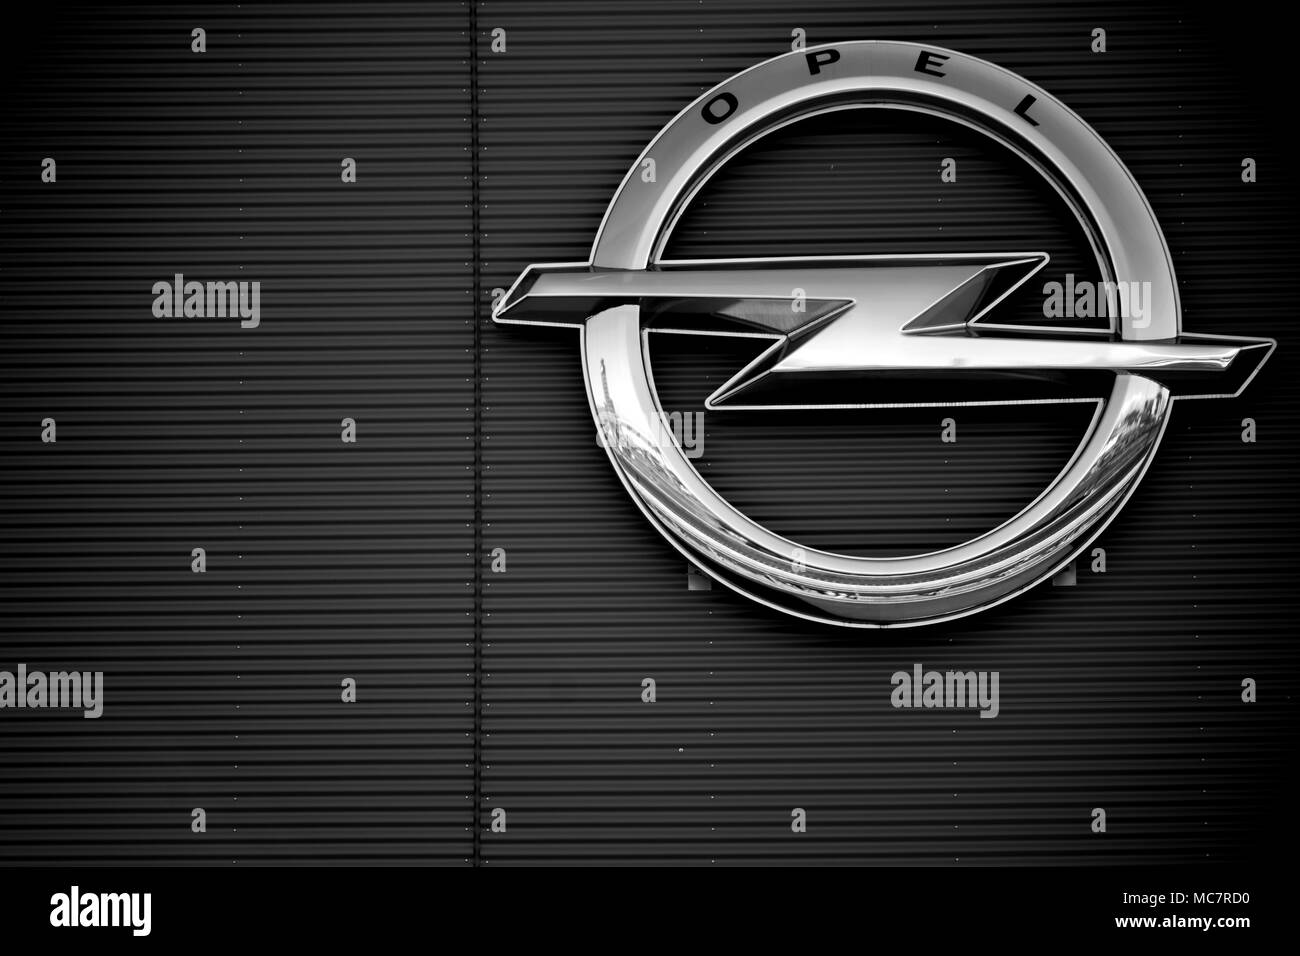 Ruesselsheim, Germany - April 11, 2018: The symbol and glossy logo of the Opel Group on the facade of an industrial building of Opel Factory on April  - Stock Image